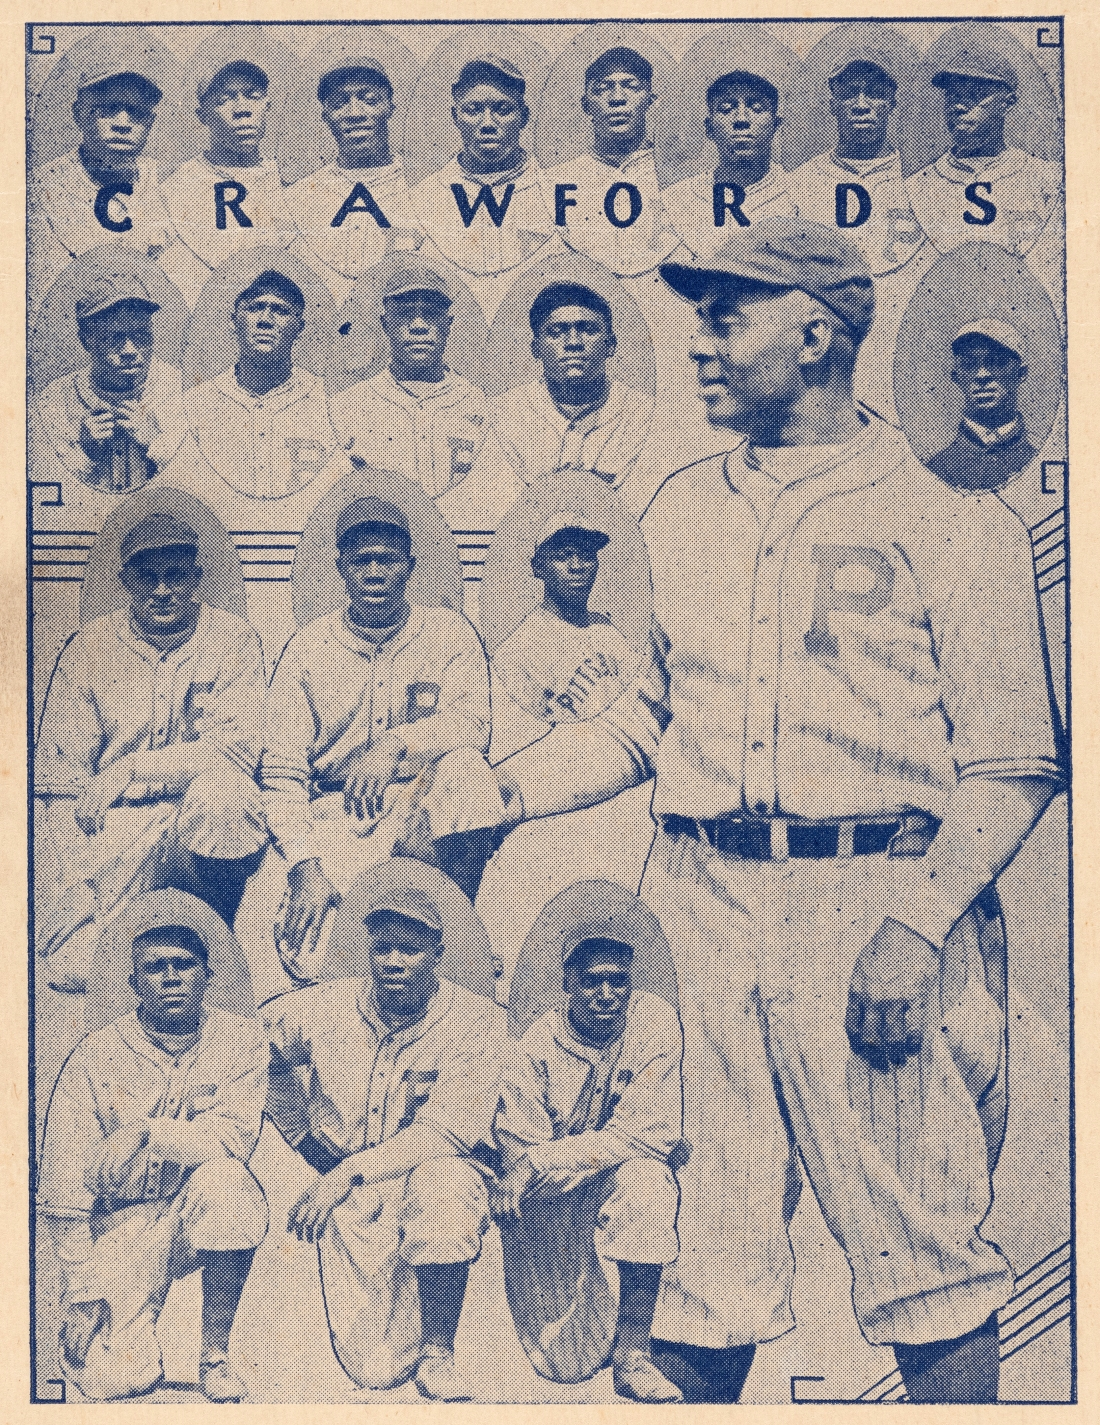 The legendary Pittsburgh Crawfords, as shown in the 1935 Negro League Baseball broadside.